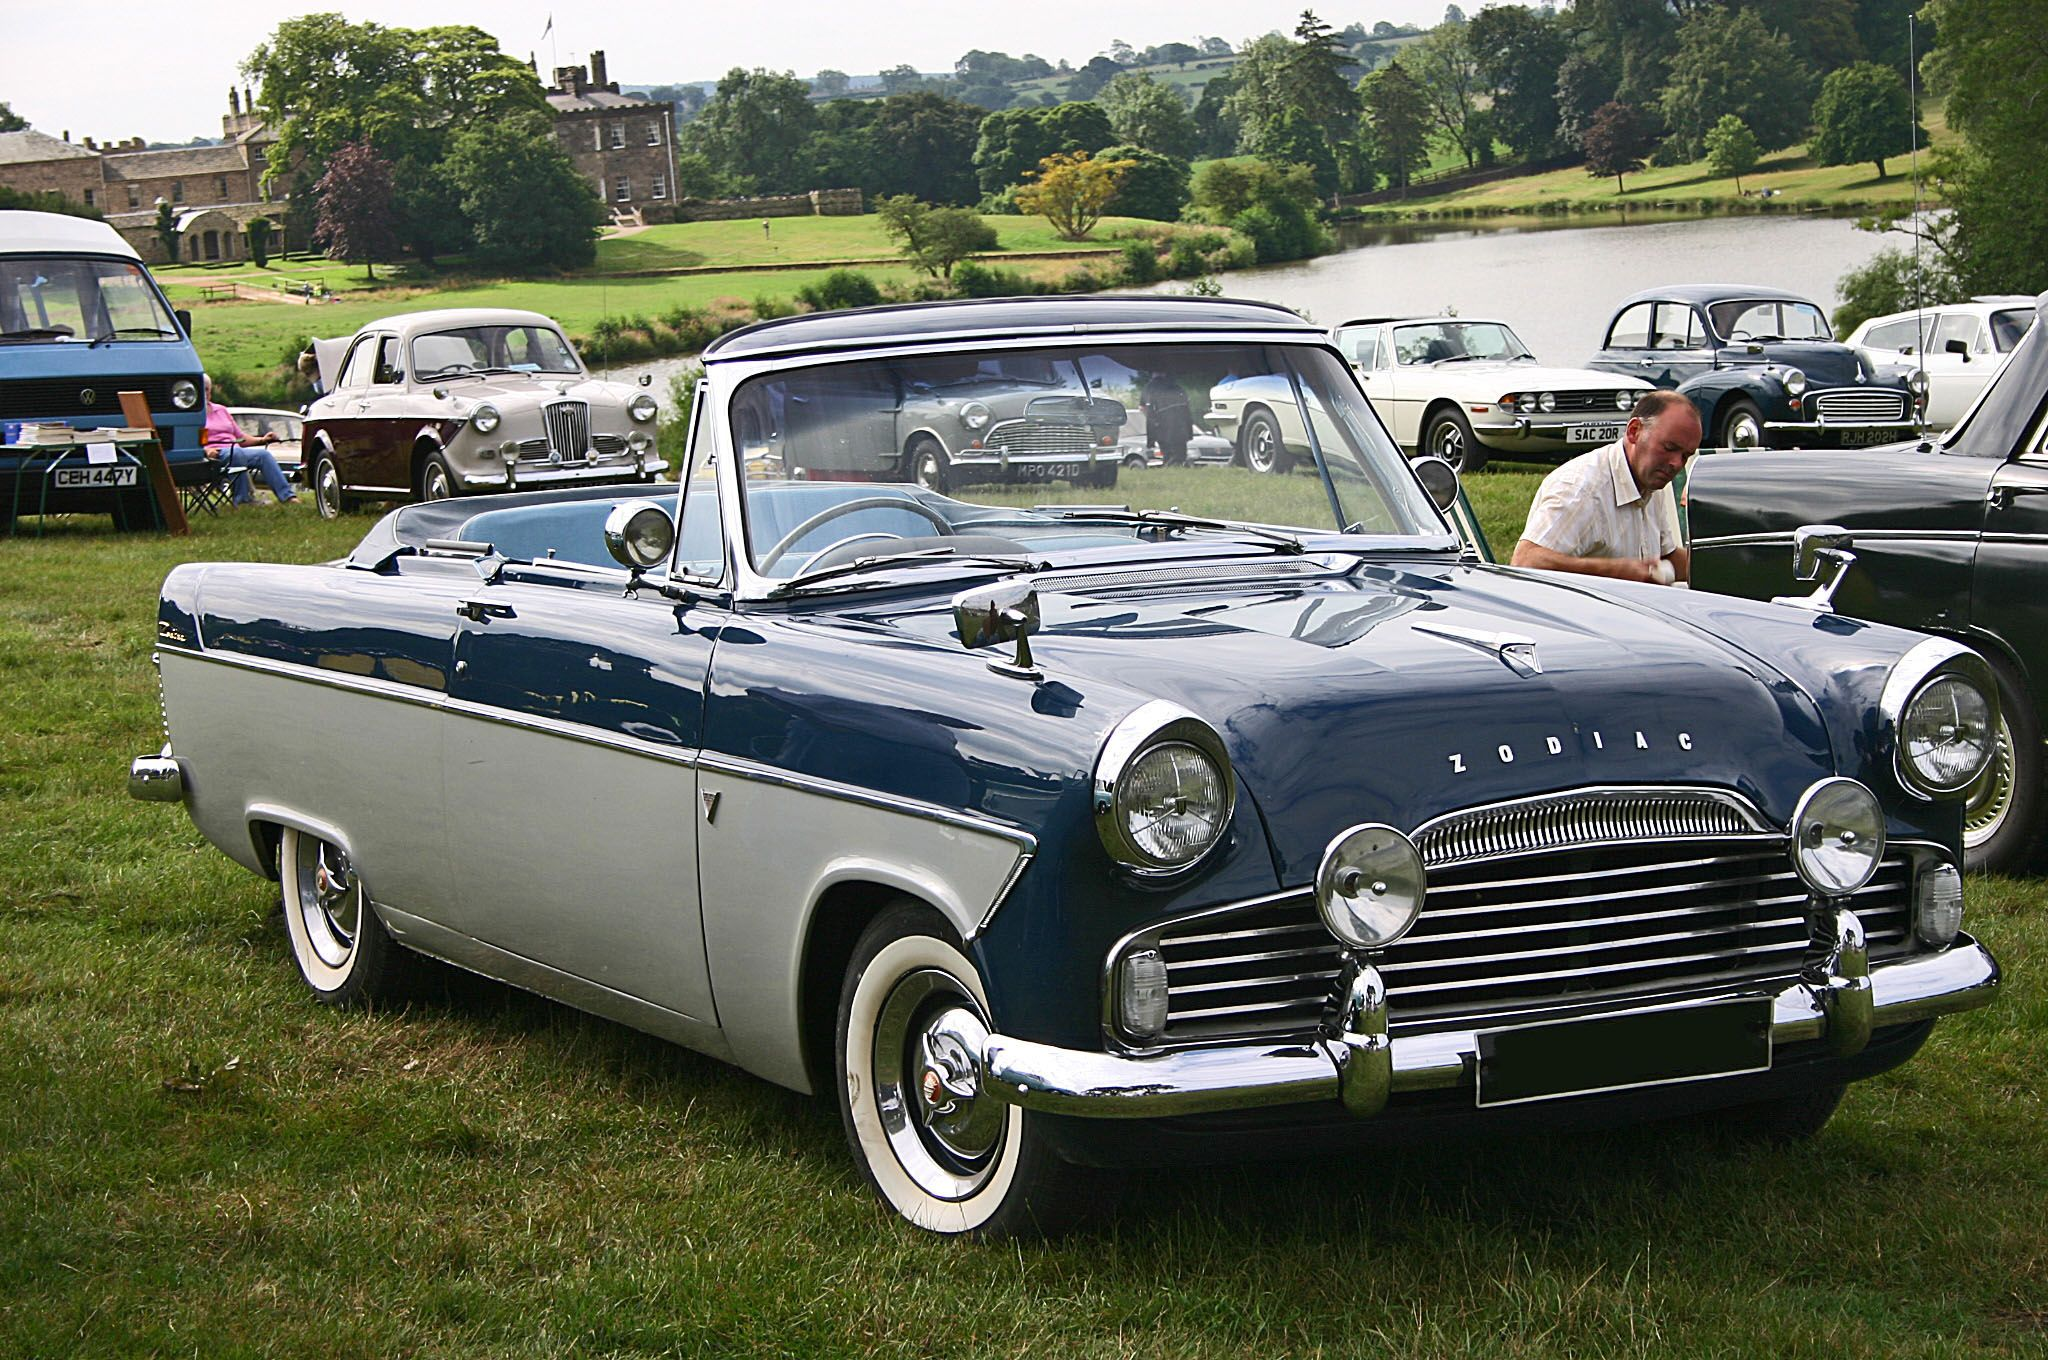 1960 Ford Zodiac Mk2 206e Convertible The Mark Ii Zodiac Was